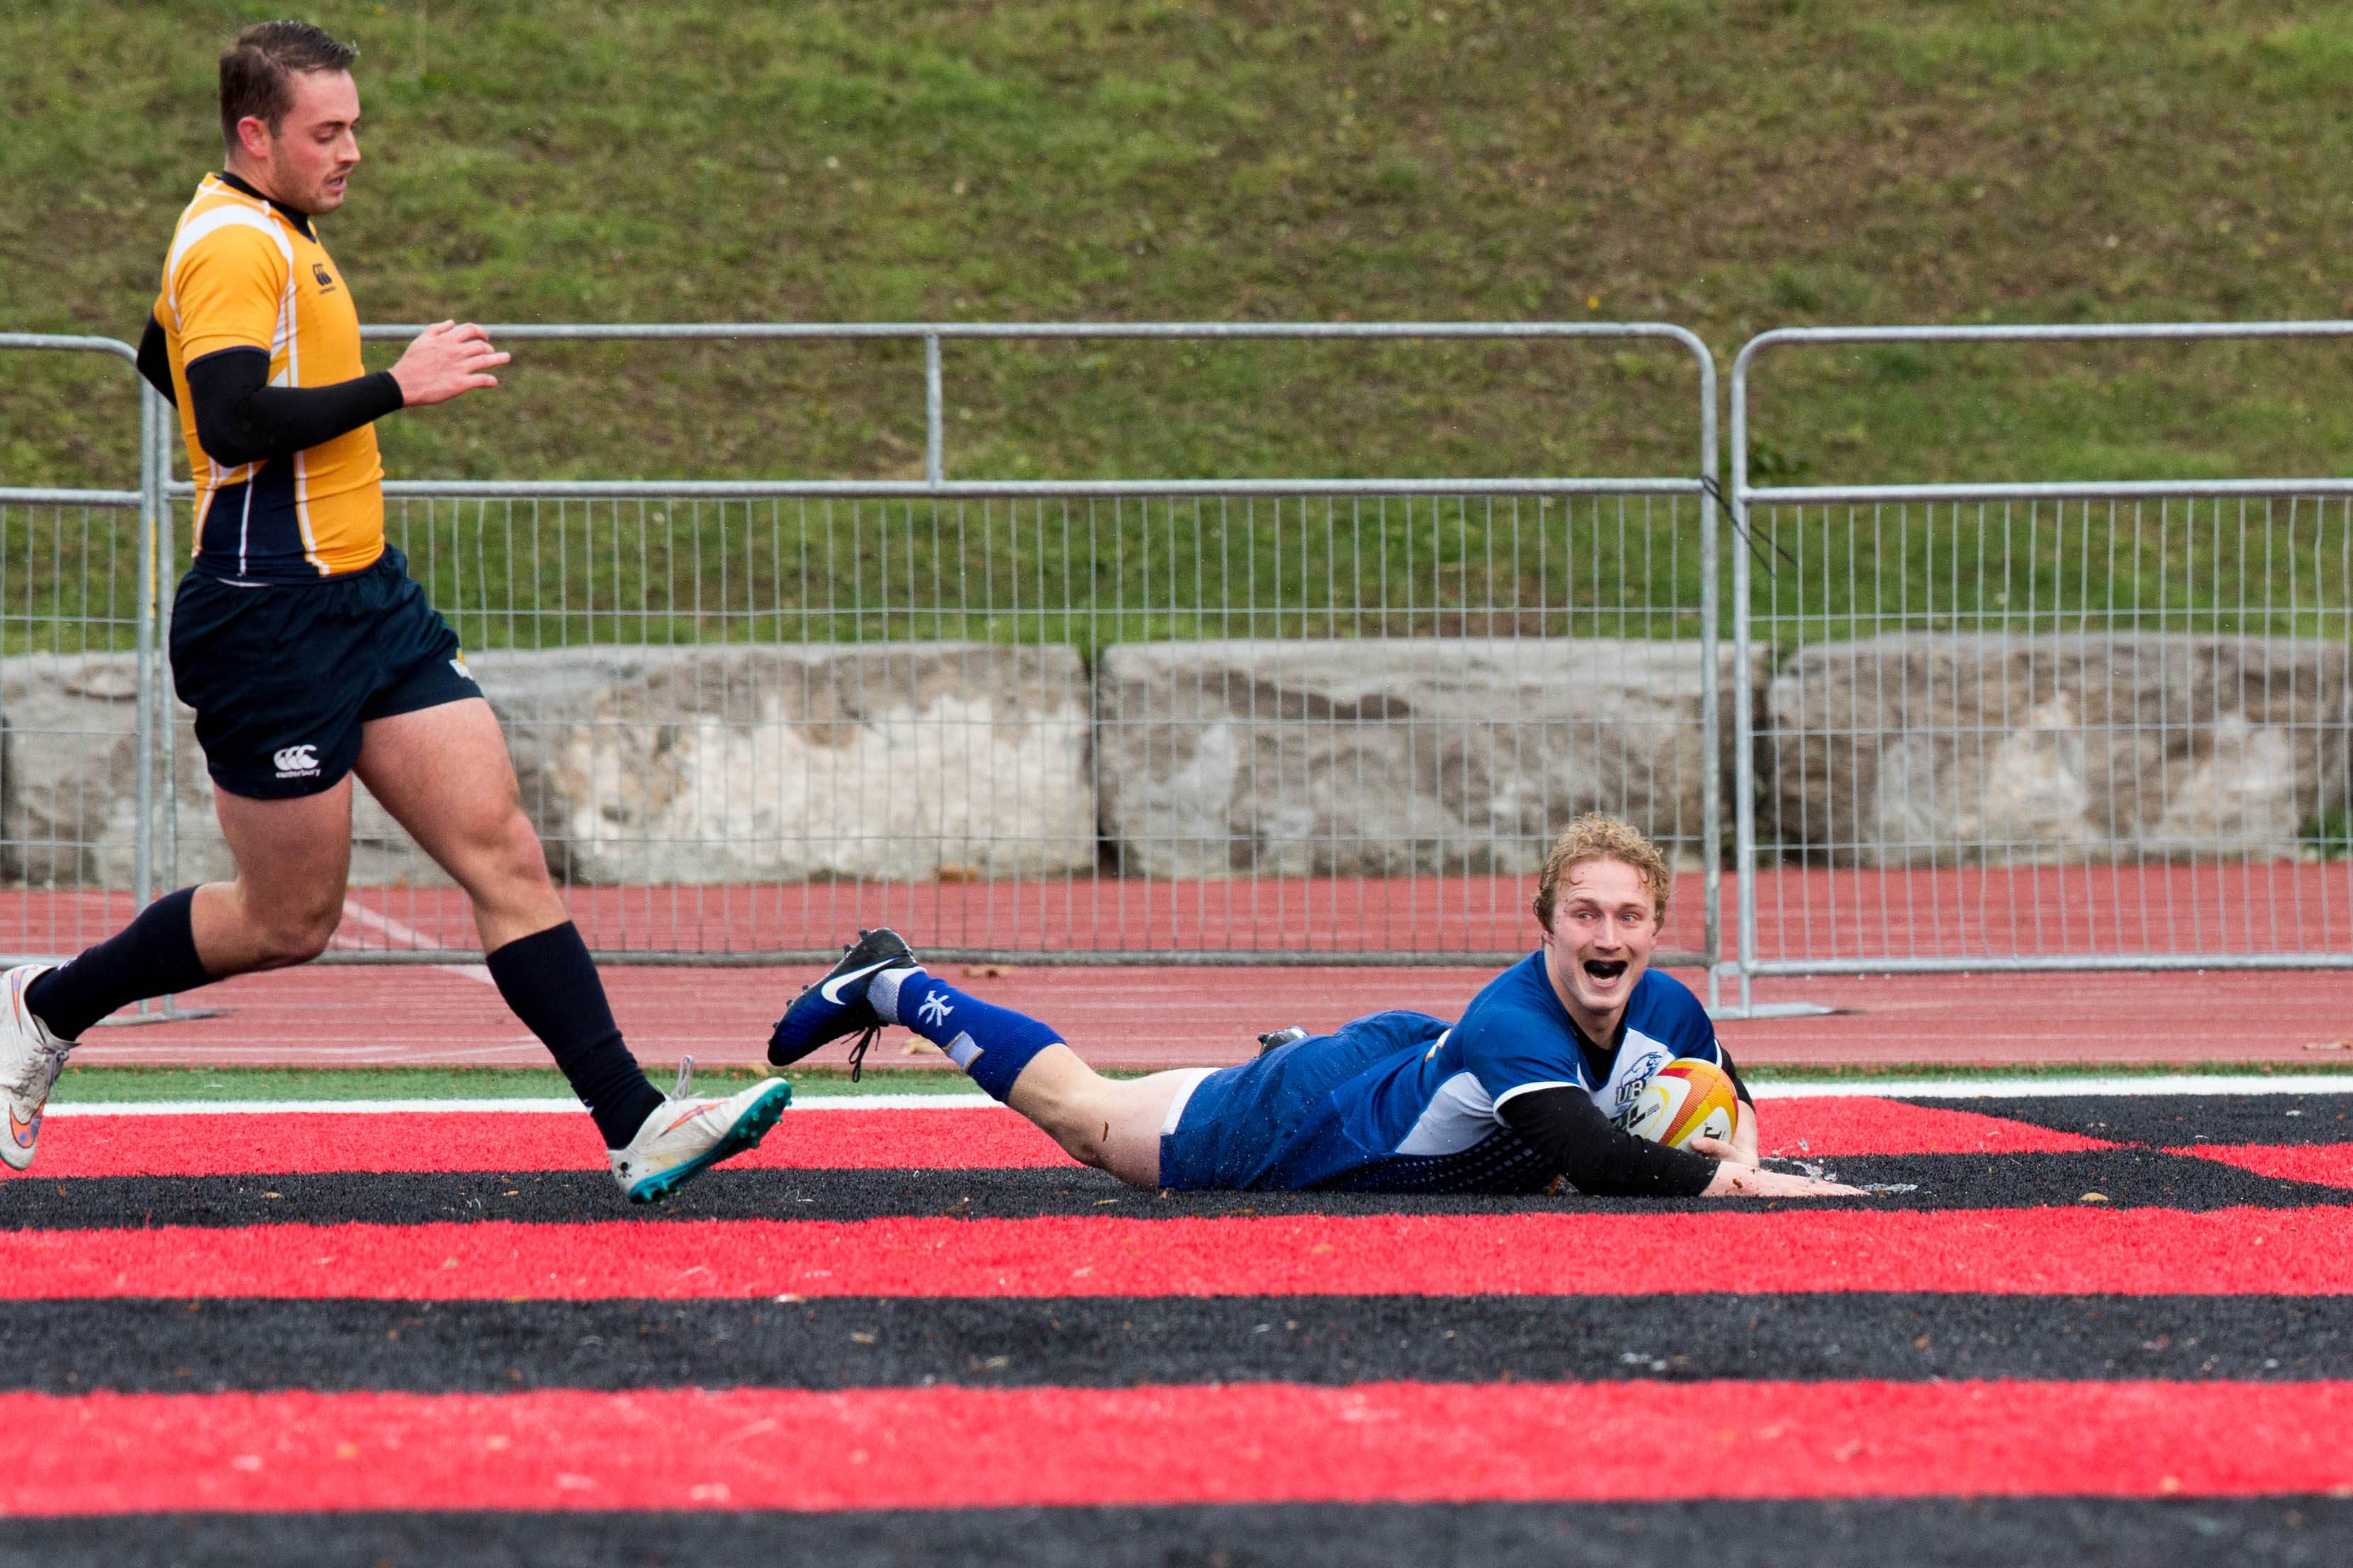 Cole Keffer scored one of UBC's tries in this year's championship final.